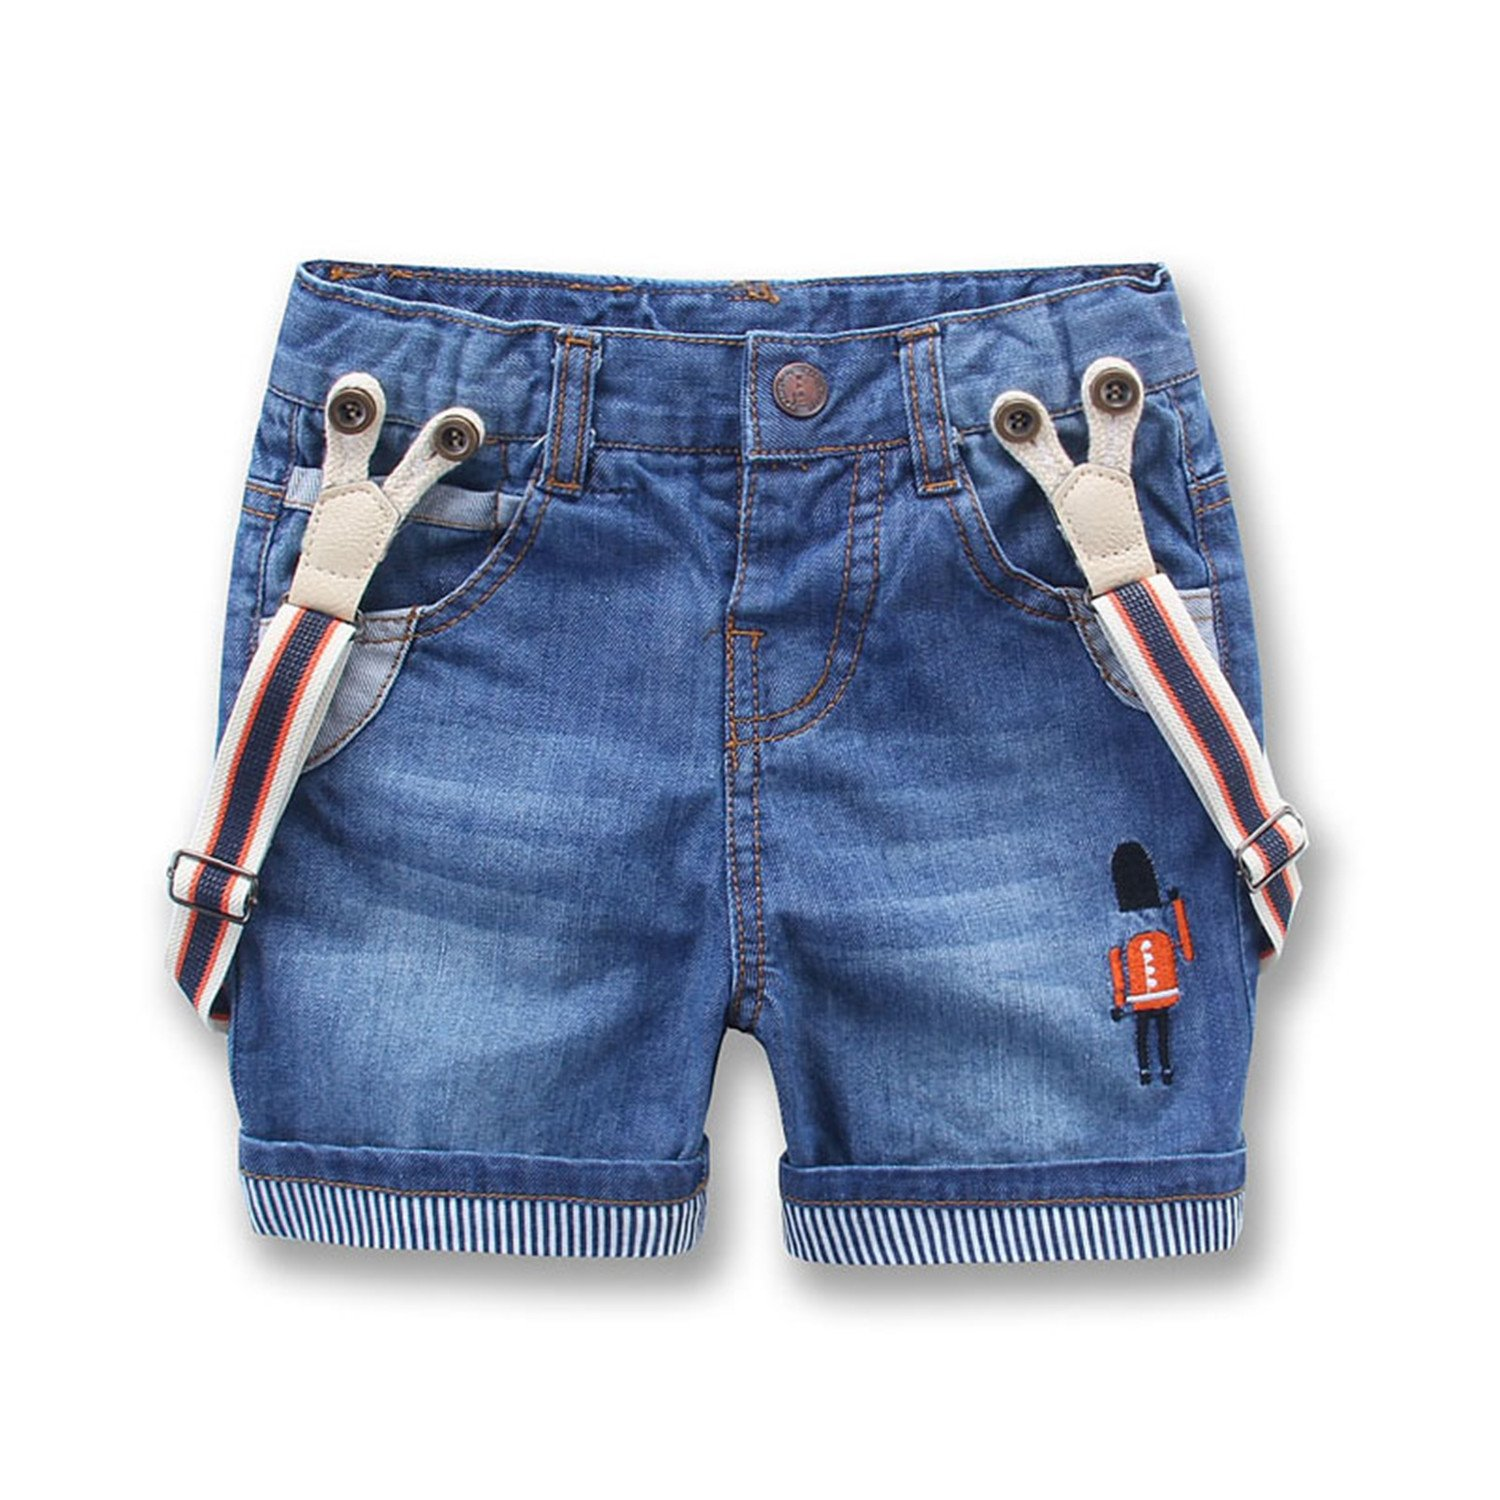 Hoared New Child Denim Shorts Summer Kids Jeans Pants Denim Overalls Suspenders Shorts 2T-8T Soldiers Overalls 8